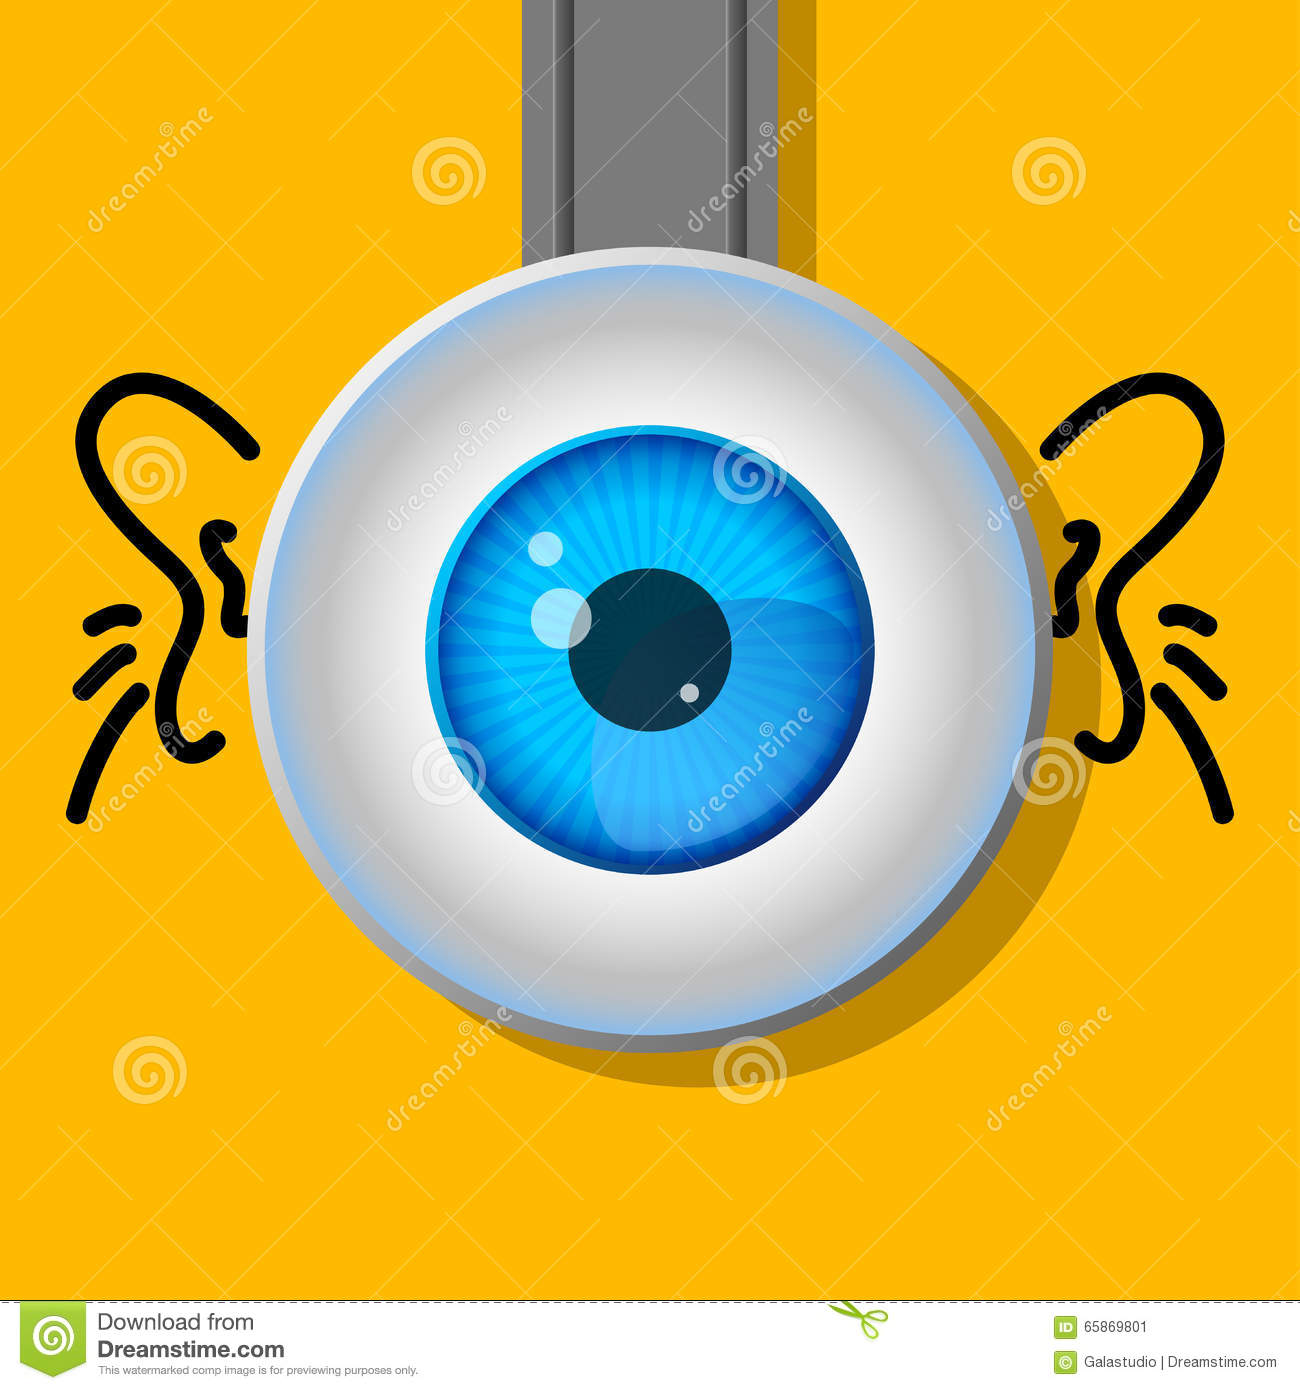 1 Eyed Cartoon Characters : One eye cartoon a typical character stock illustration